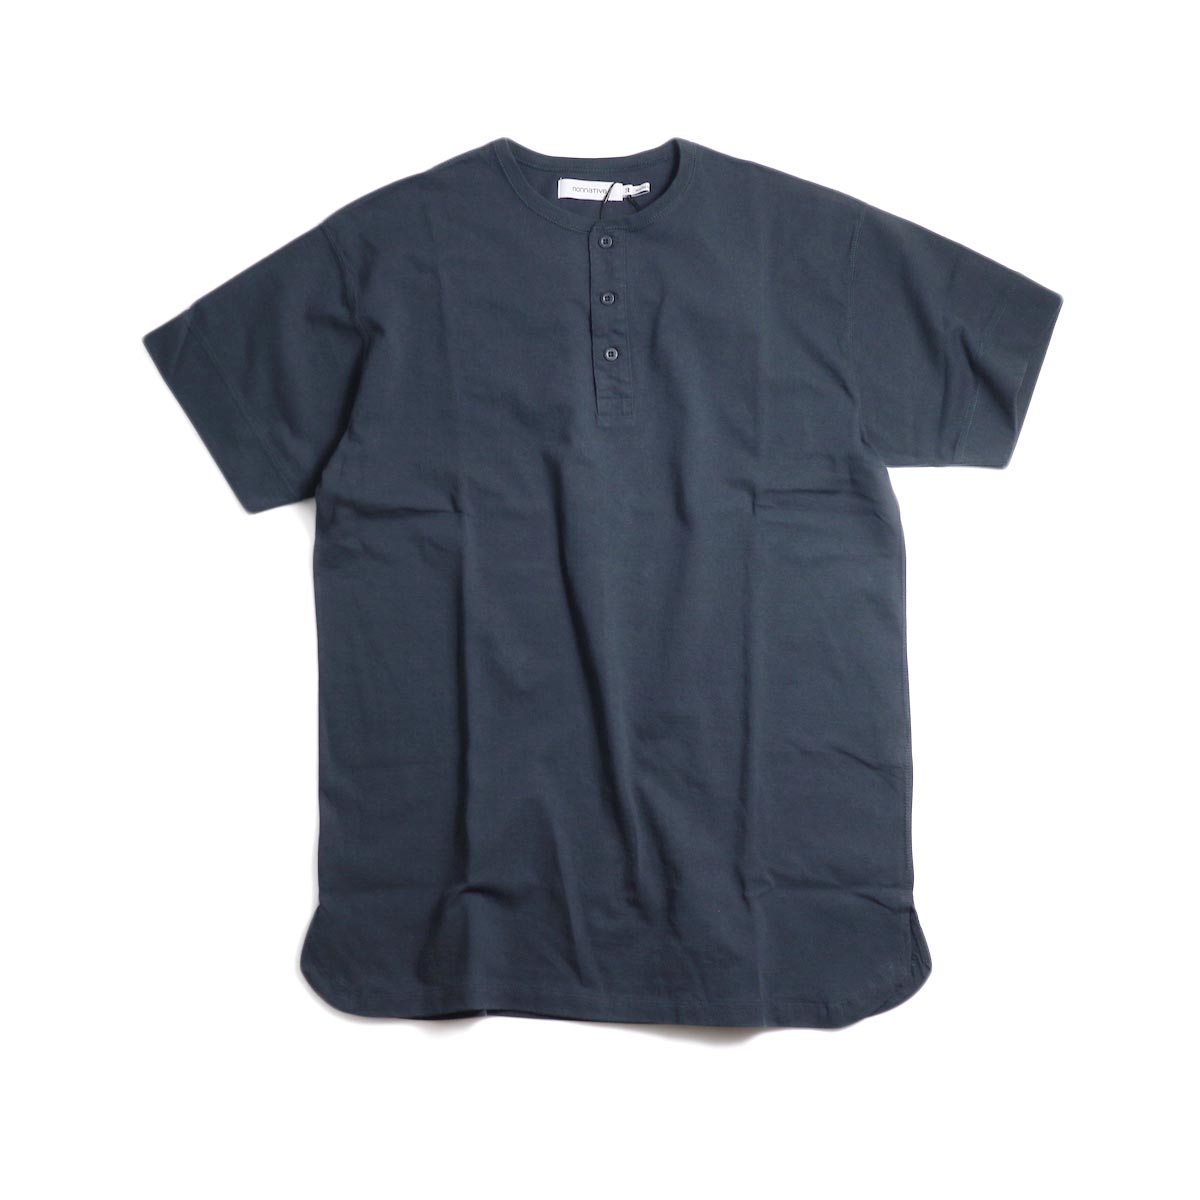 nonnative / DWELLER HENLEY NECK S/S TEE COTTON JERSEY HEAVY WEIGHT -Charcoal